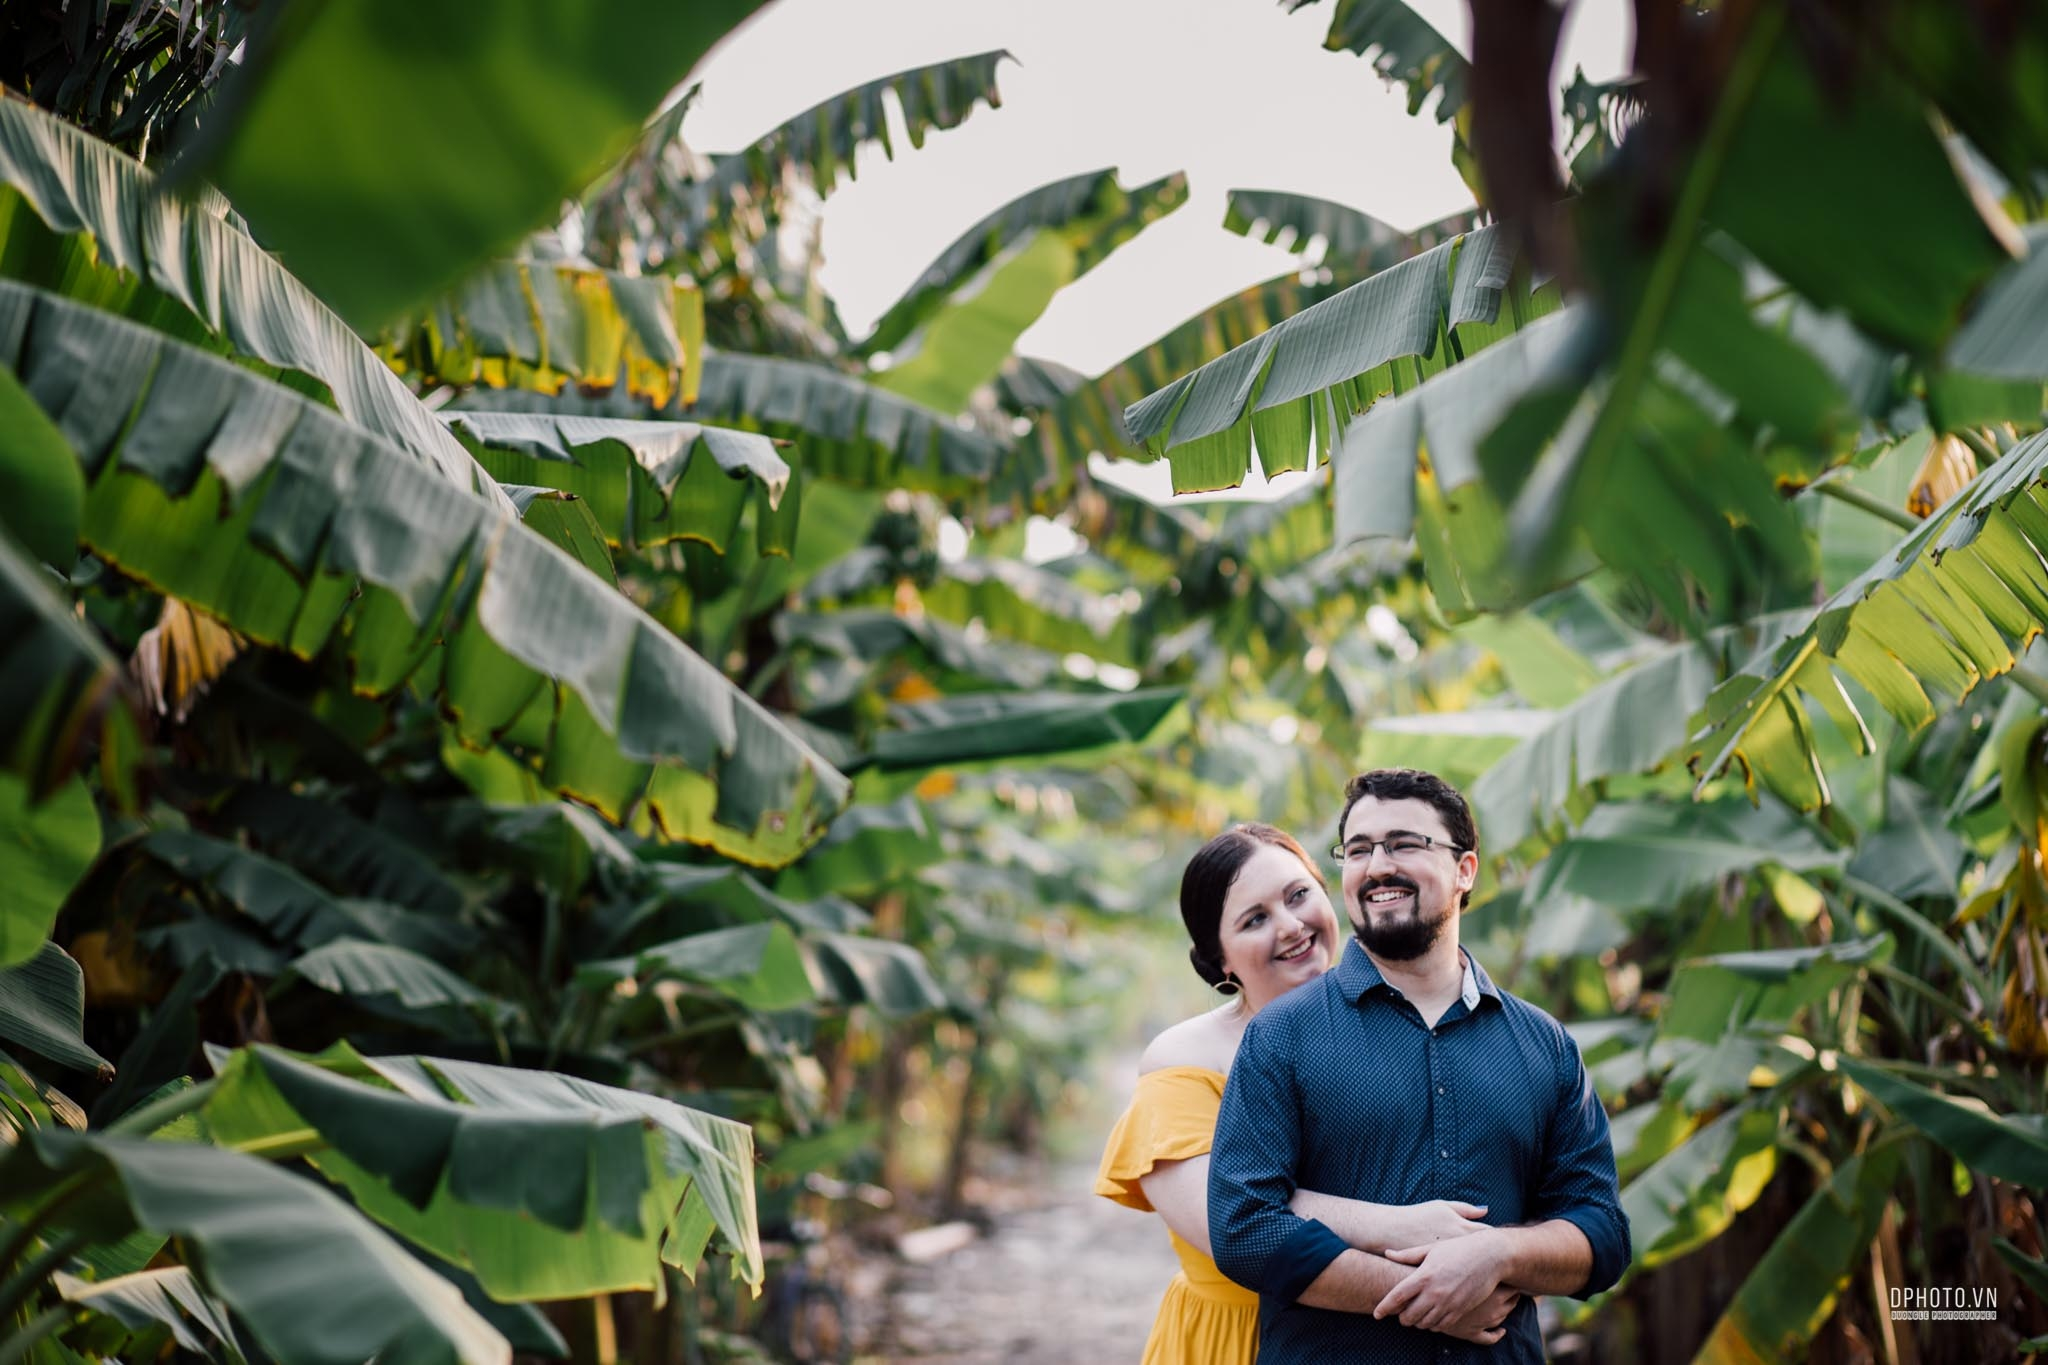 engagement_photo_in_sai_gon_ho_chi_minh_viet_nam60